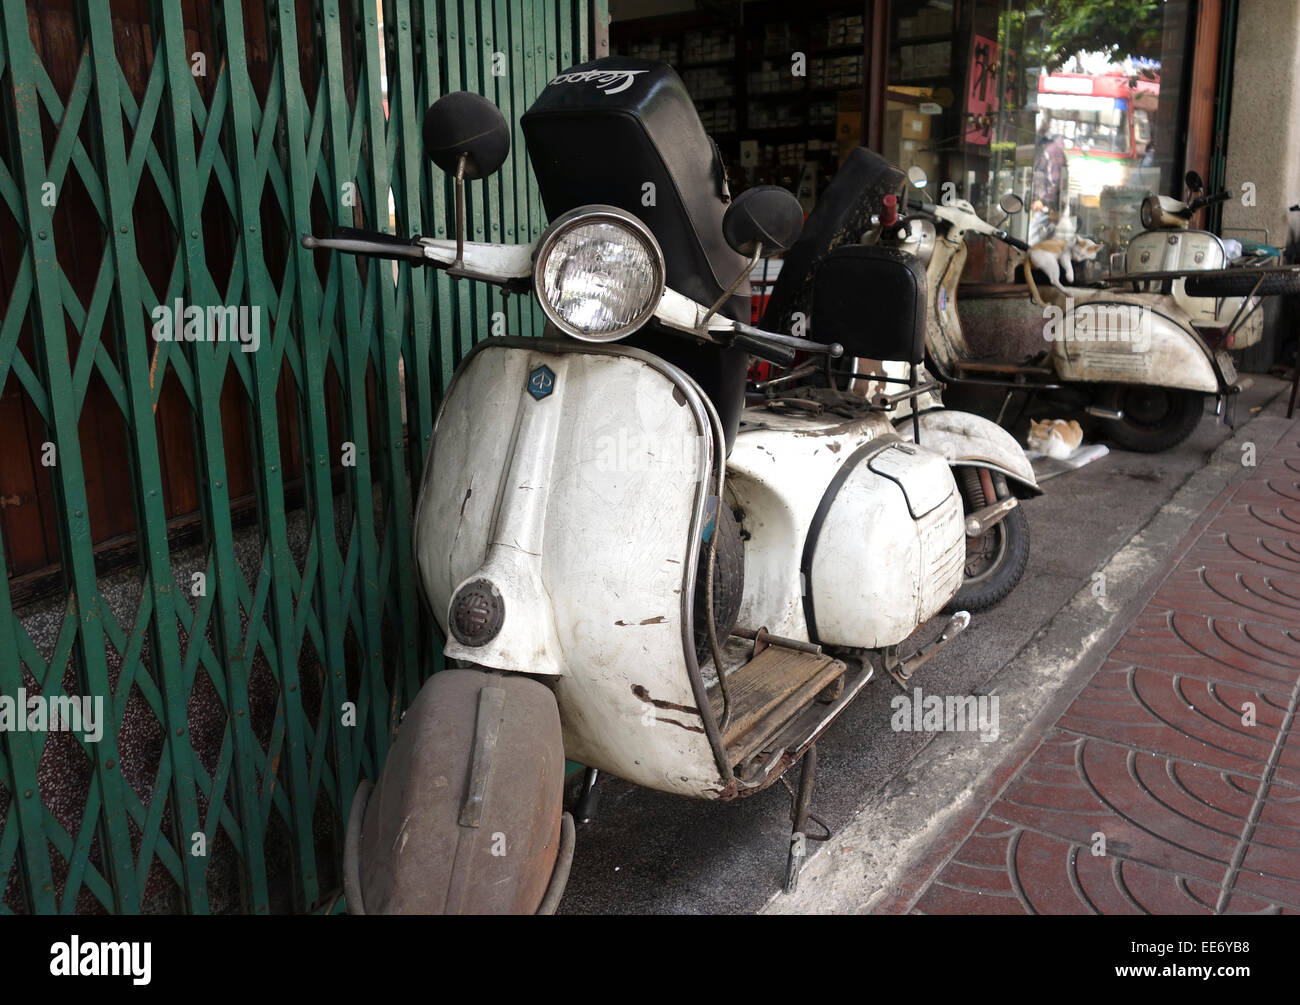 Vespa Collection Stock Photos & Vespa Collection Stock Images - Alamy